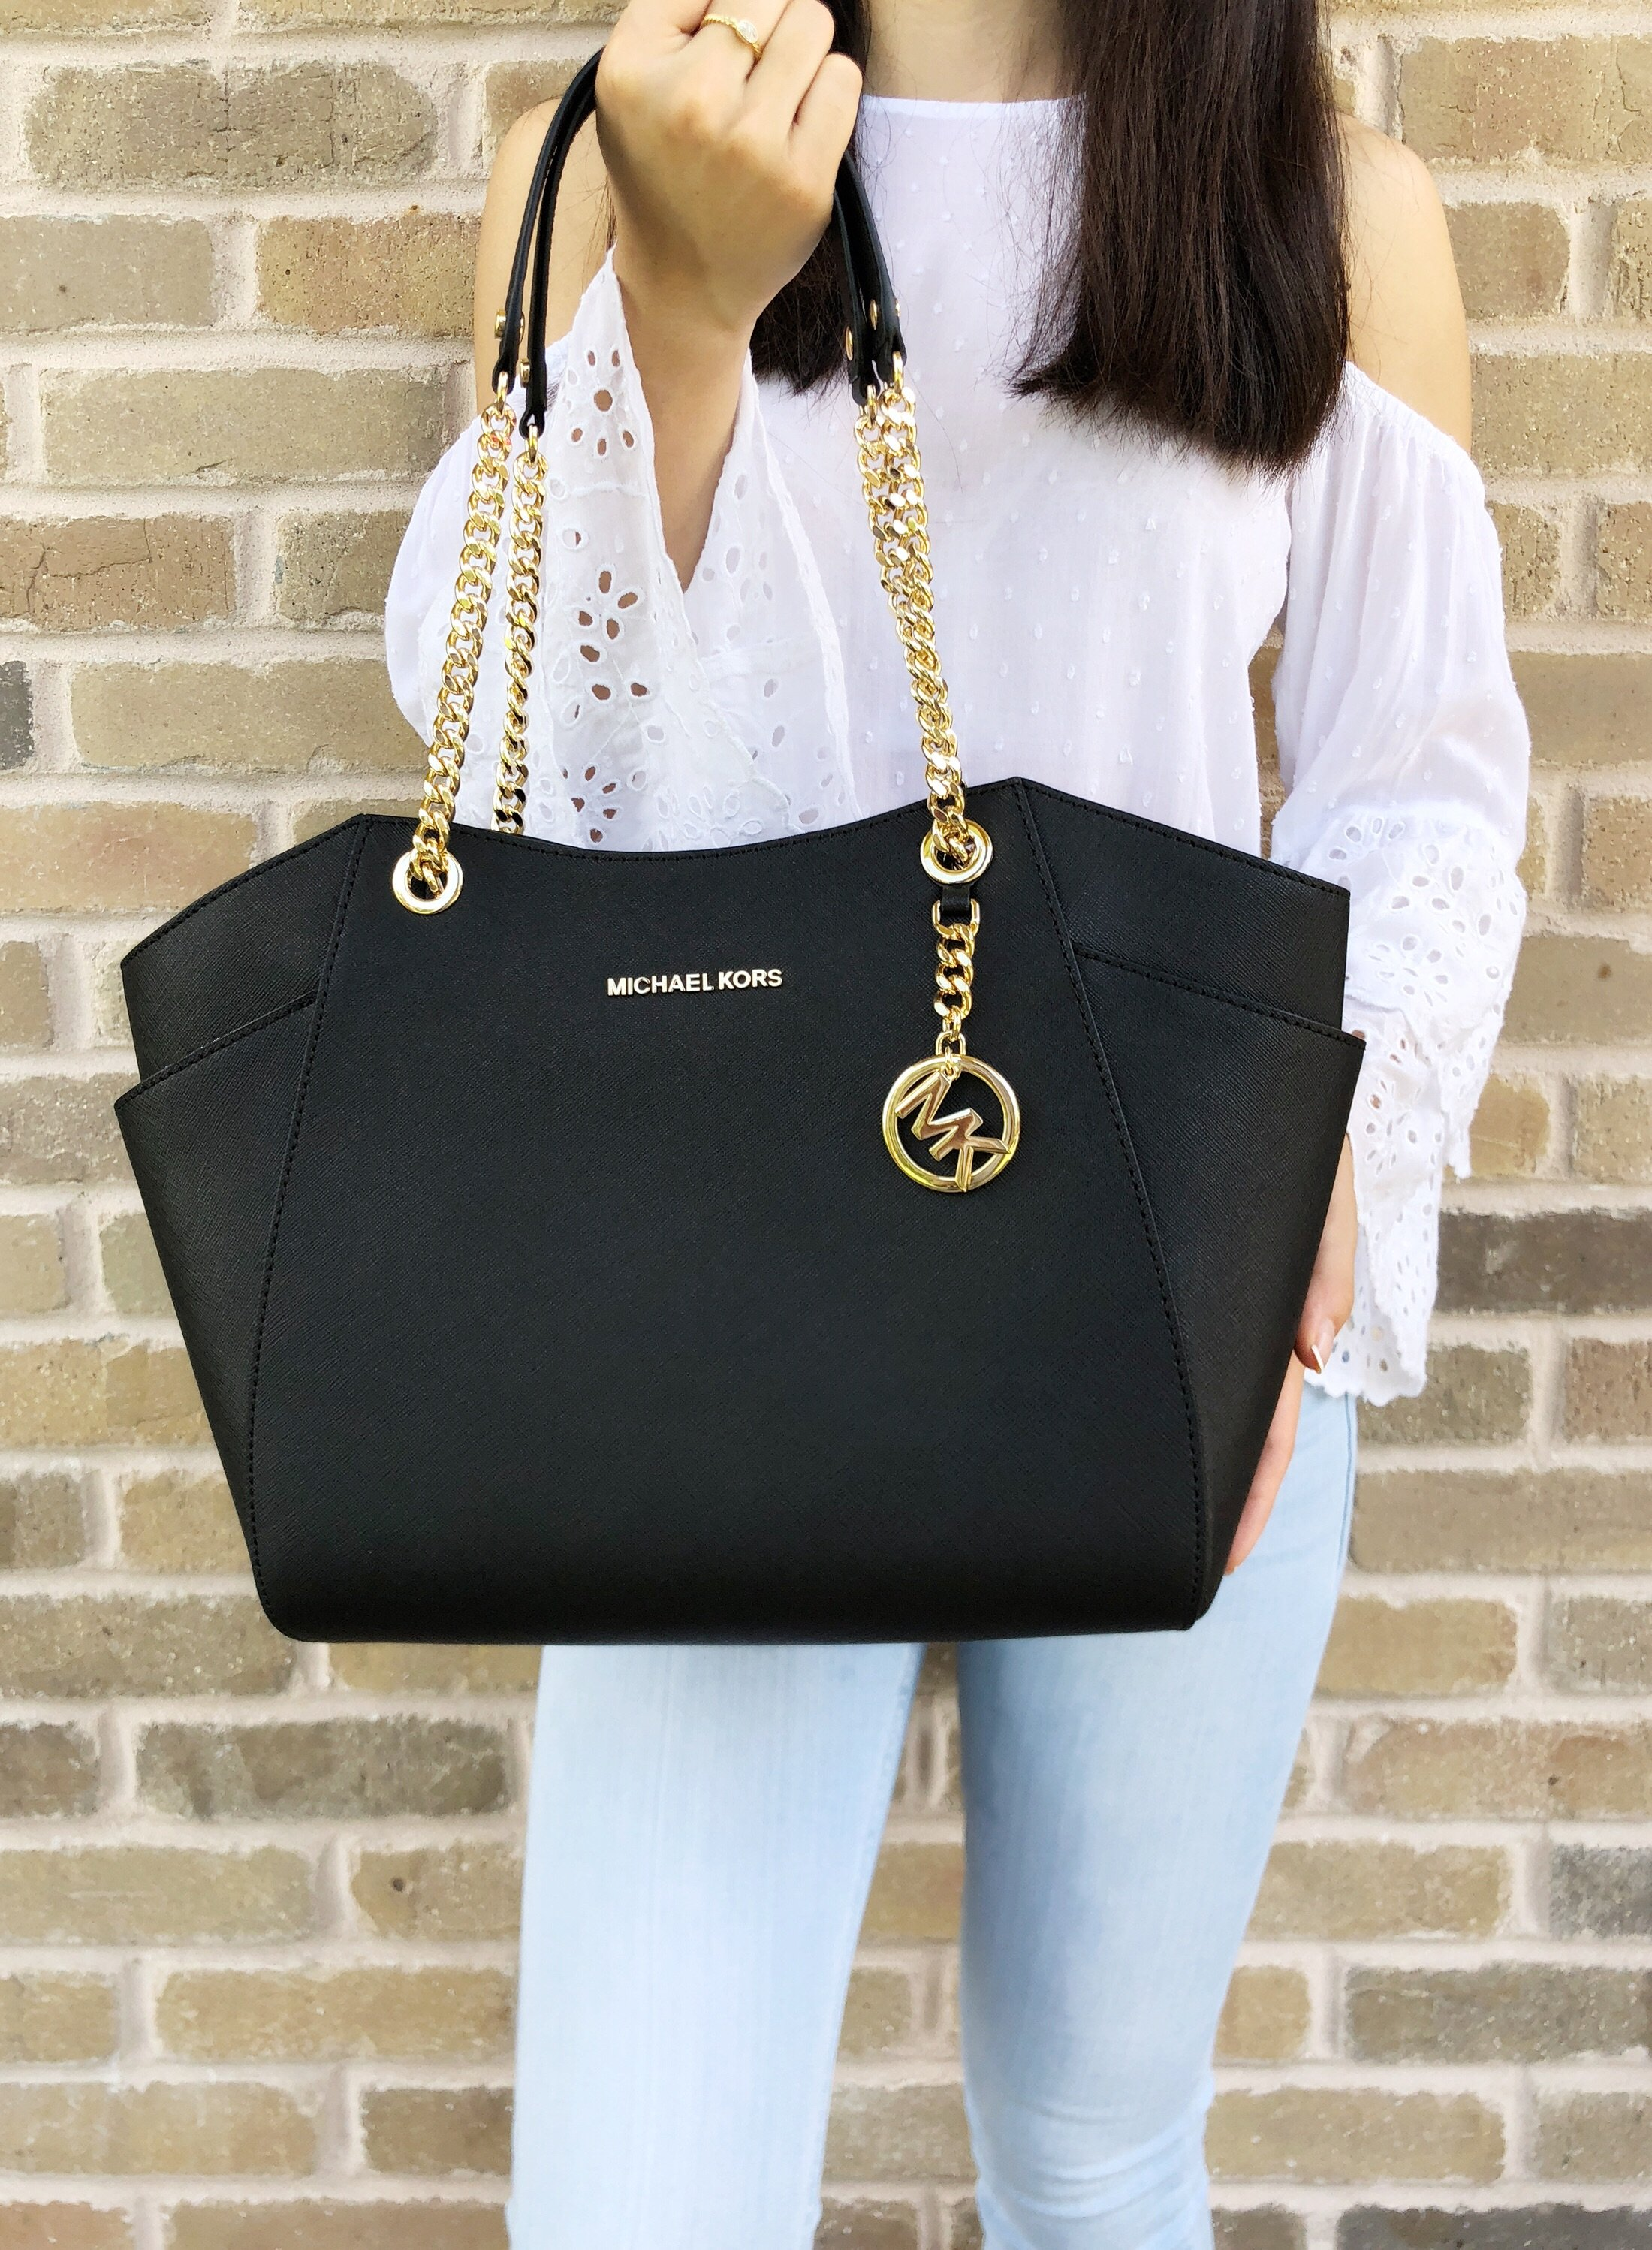 61c1f2dcba45 Michael Kors Jet Set Travel Chain Shoulder Tote Bag Black Saffiano ...